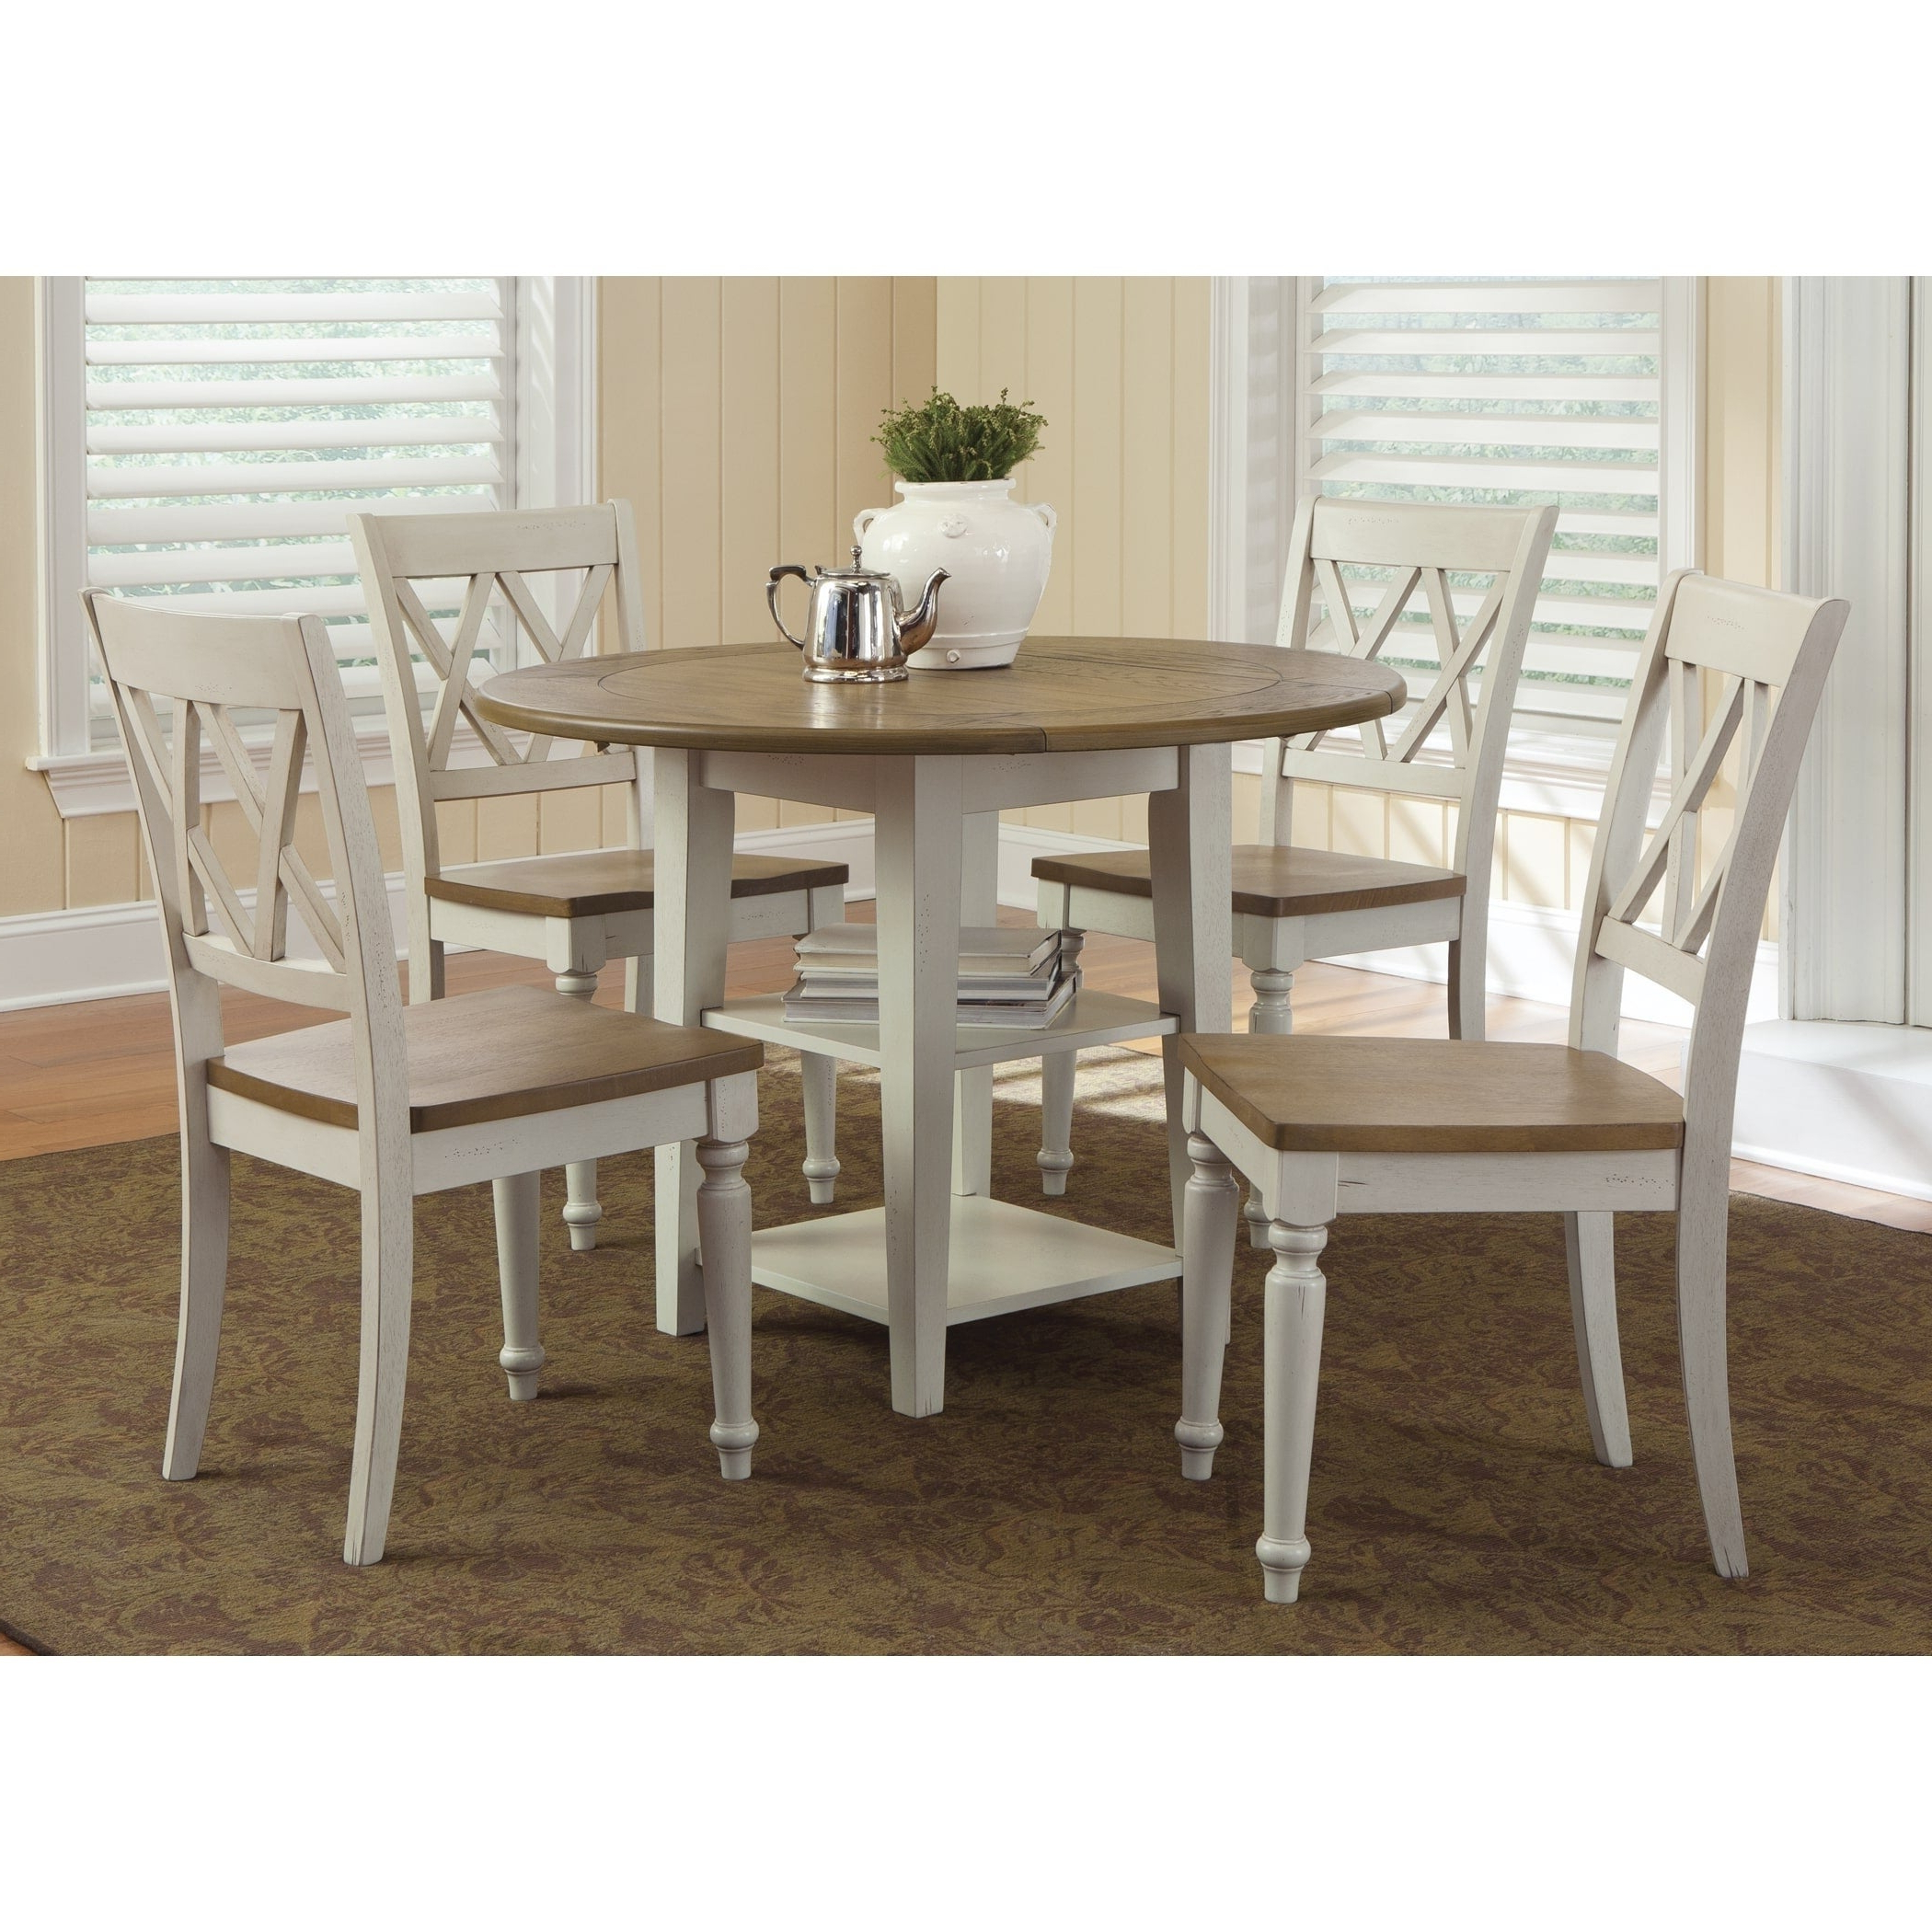 Transitional Antique Walnut Square Casual Dining Tables With Widely Used Al Fresco Two Tone Transitional Drop Leaf Leg Table – Antique White (View 16 of 30)